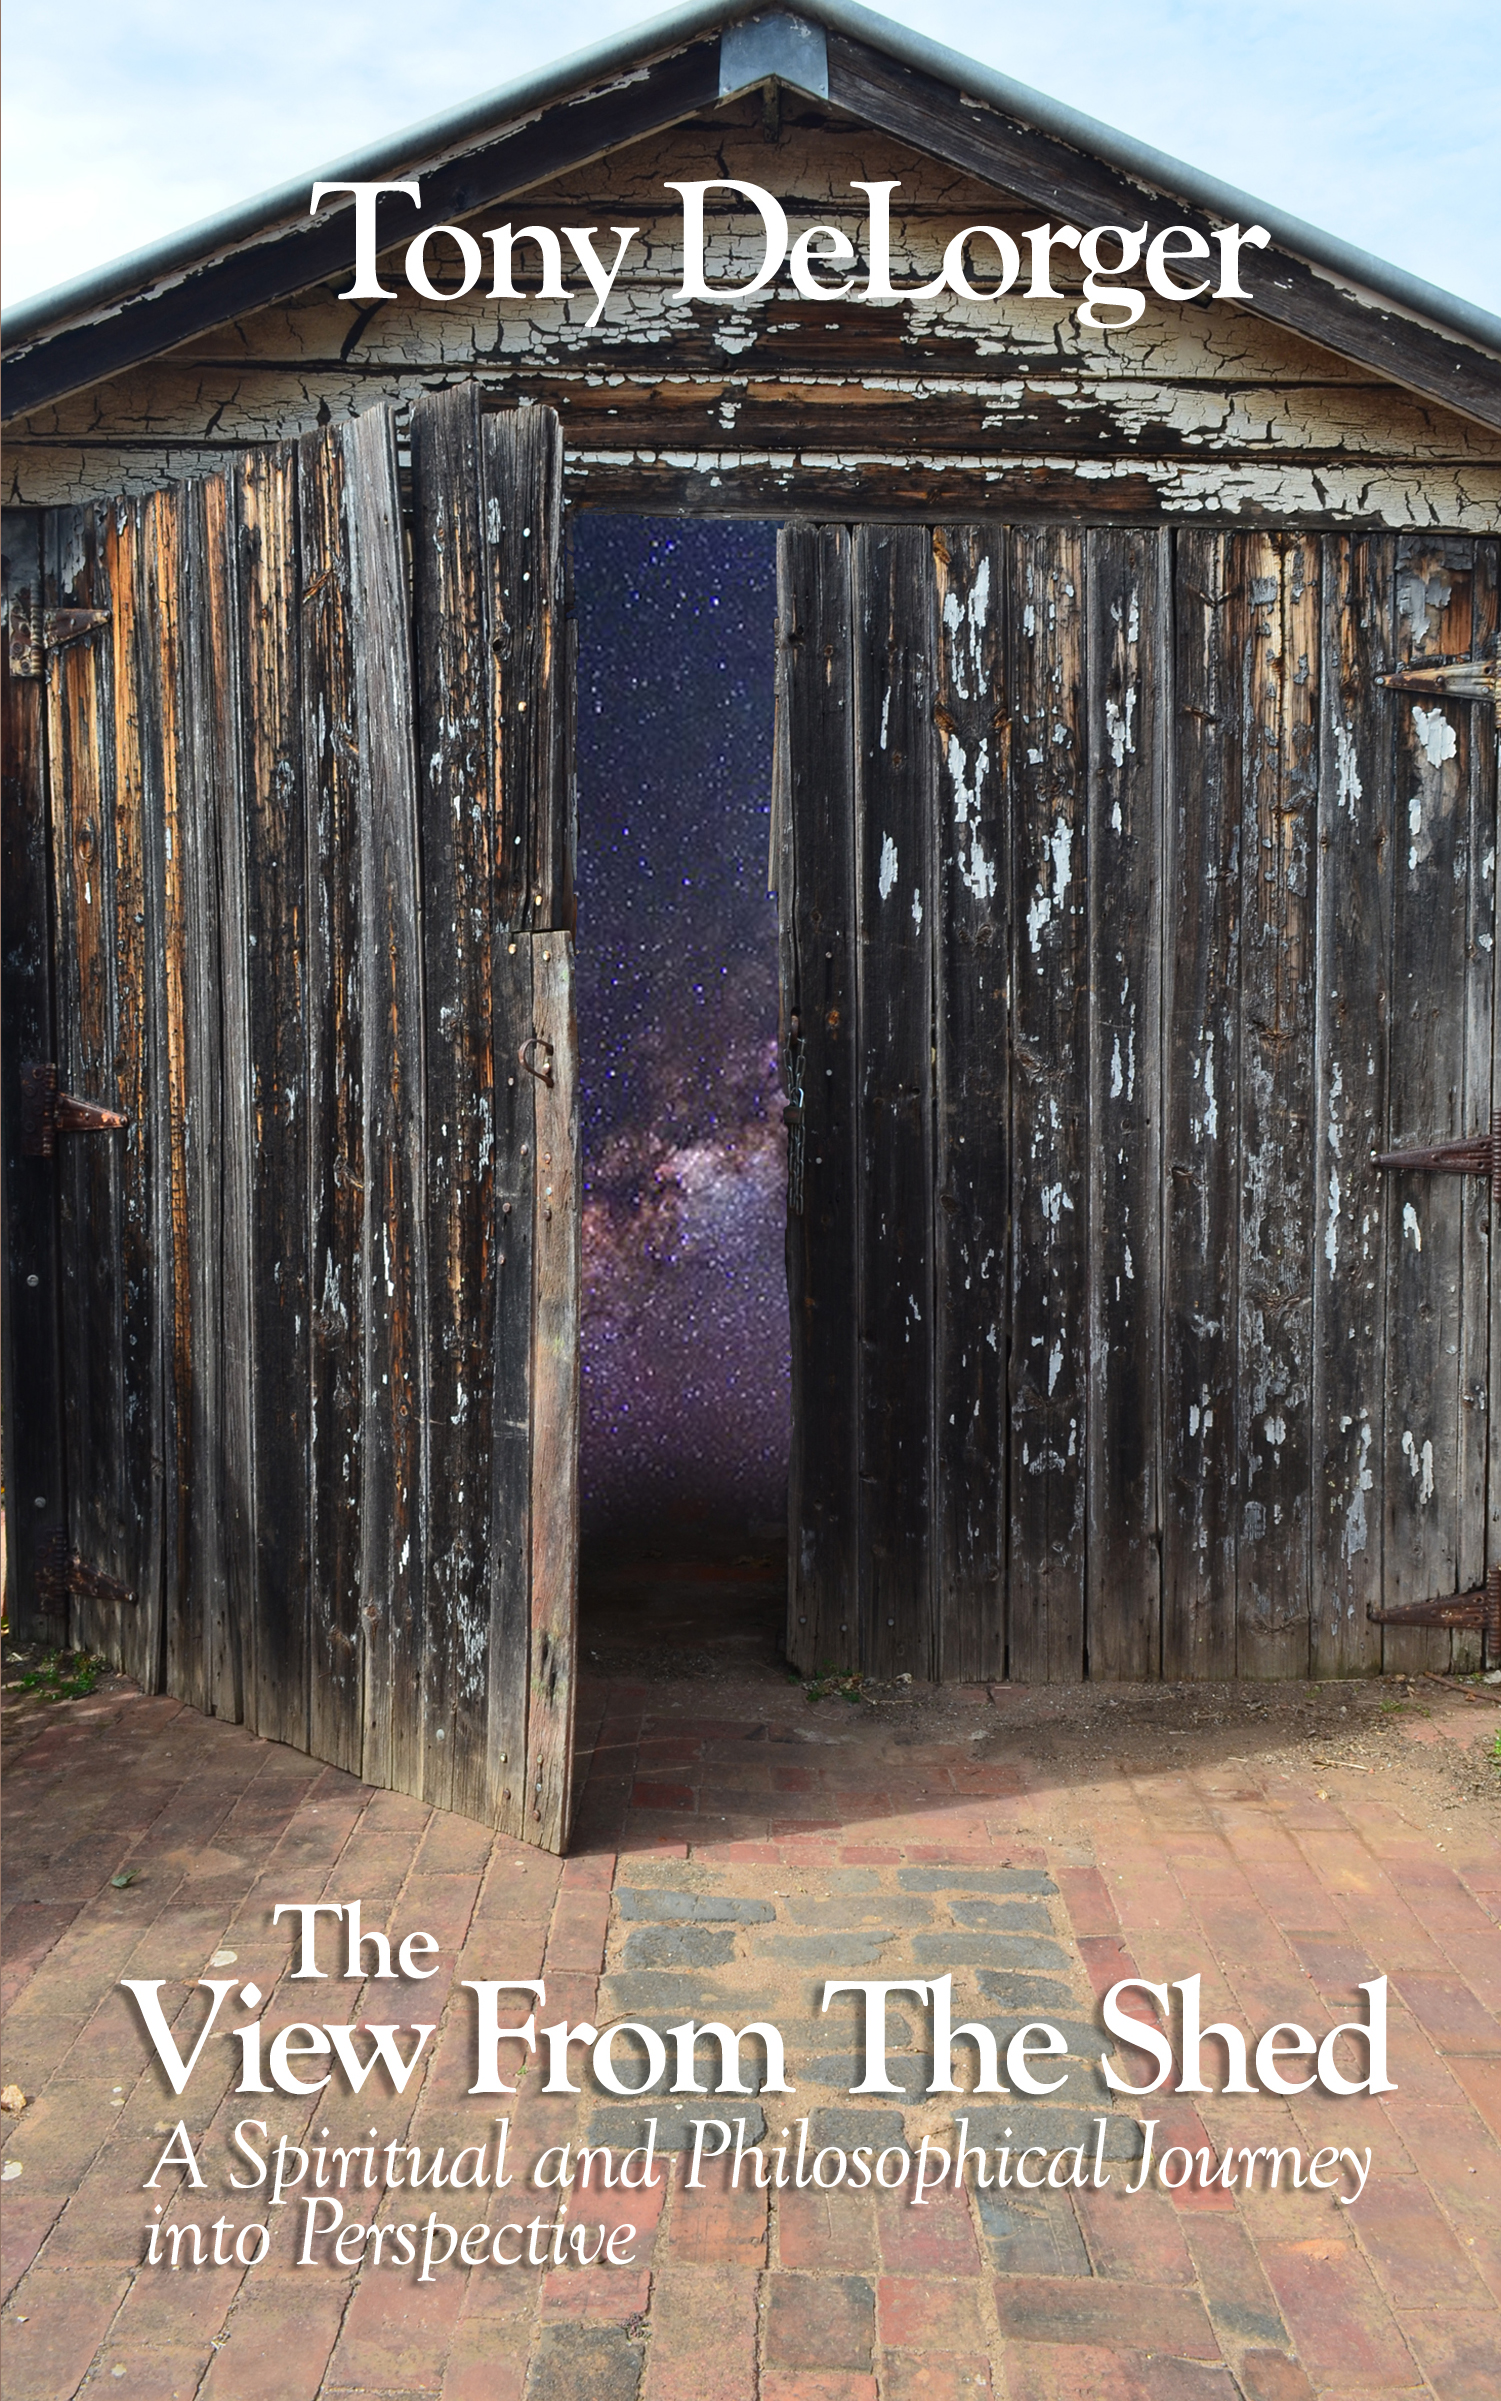 'The View from the Shed' A Spiritual and Philosophical Journey into Perspective